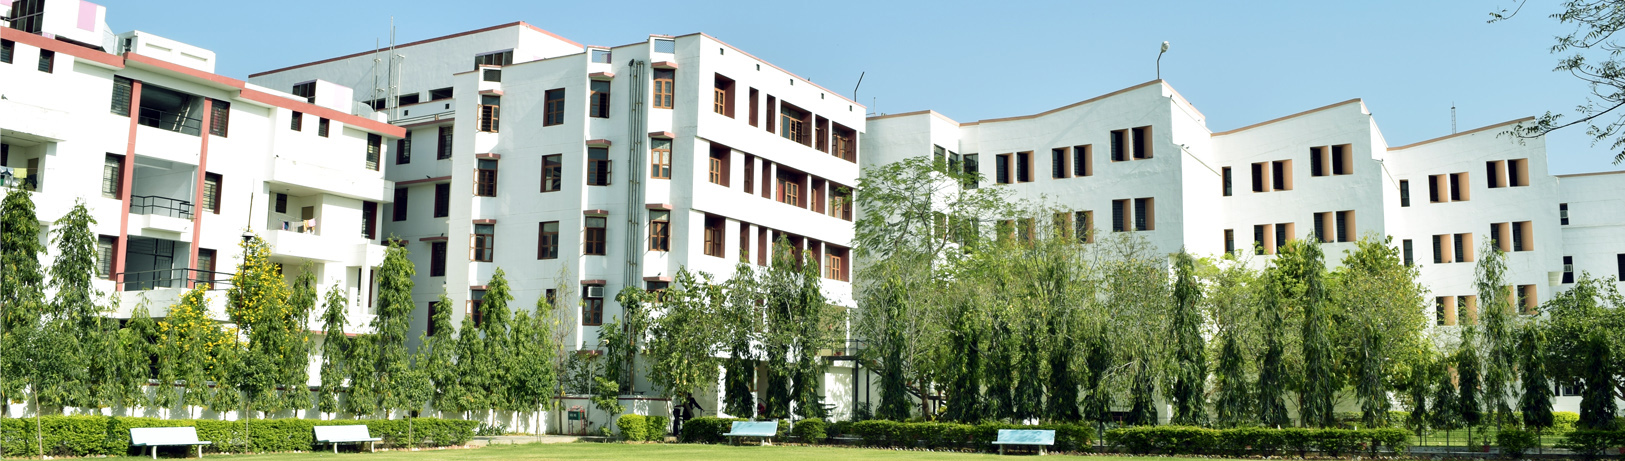 Swami Keshvanand Institute Of Technology, Management And Gramothan Image